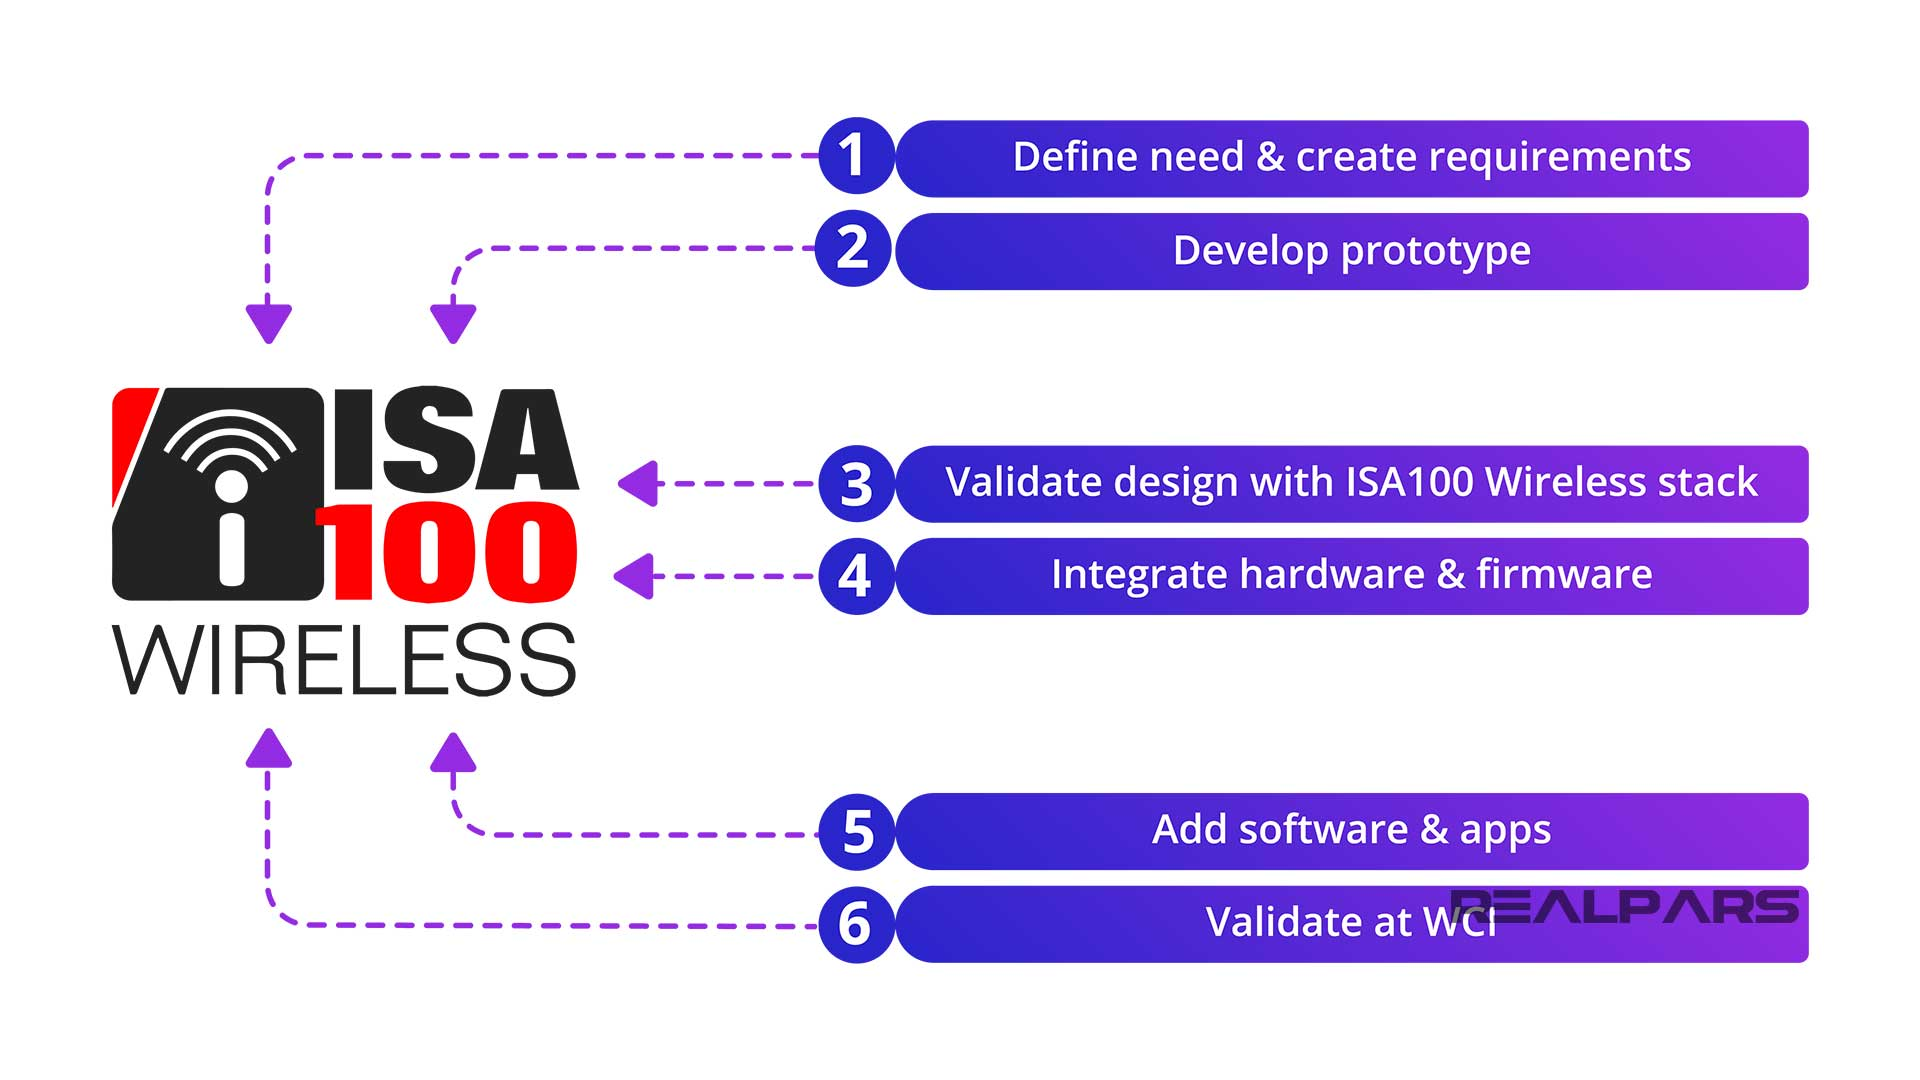 Developing-and-certifying-an-ISA100-Wireless-instrument